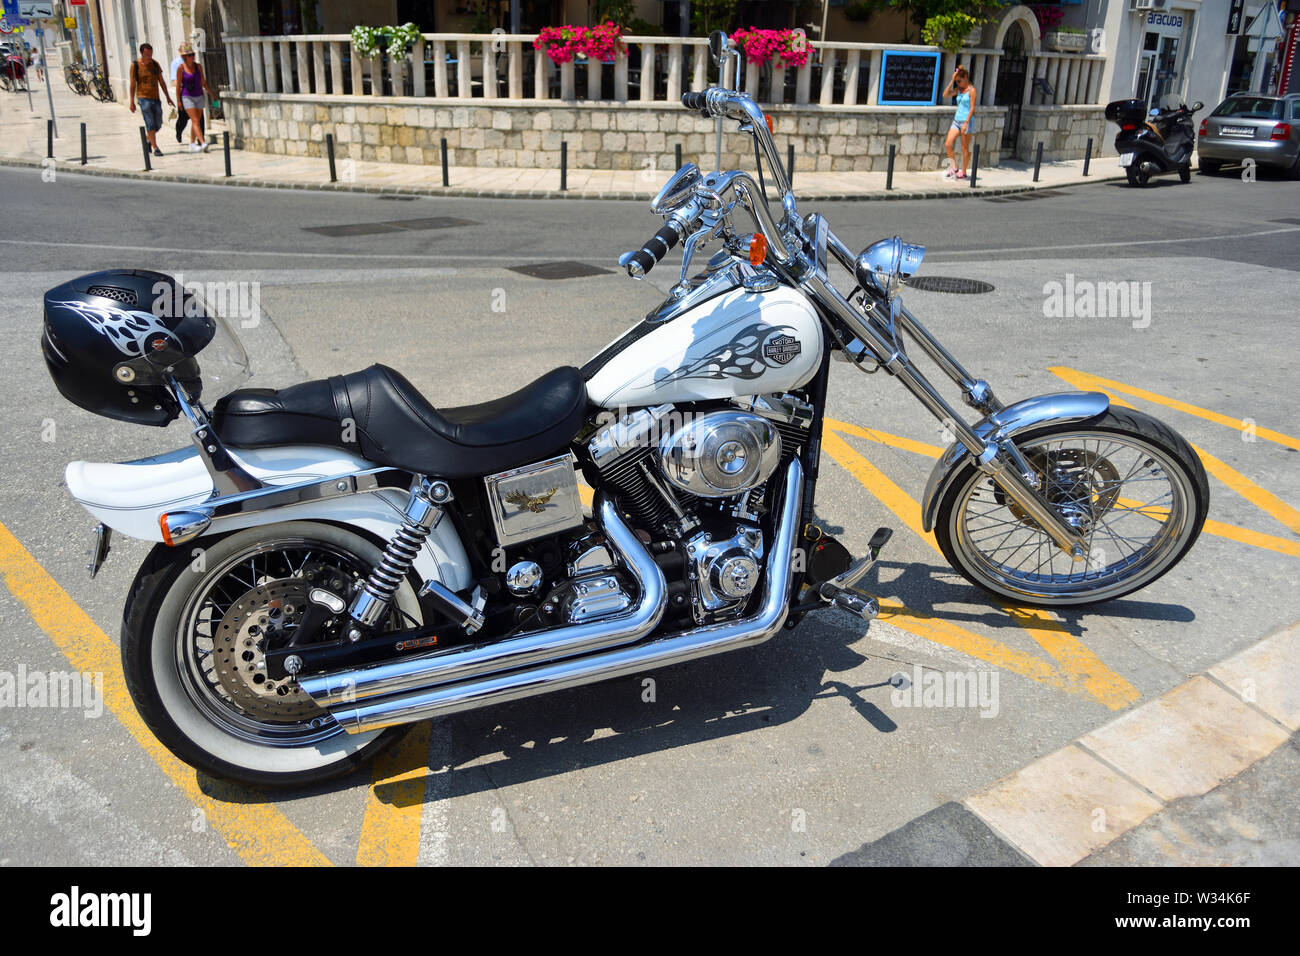 Harley Davidson Motorcycle parked in road with helmet on back. - Stock Image